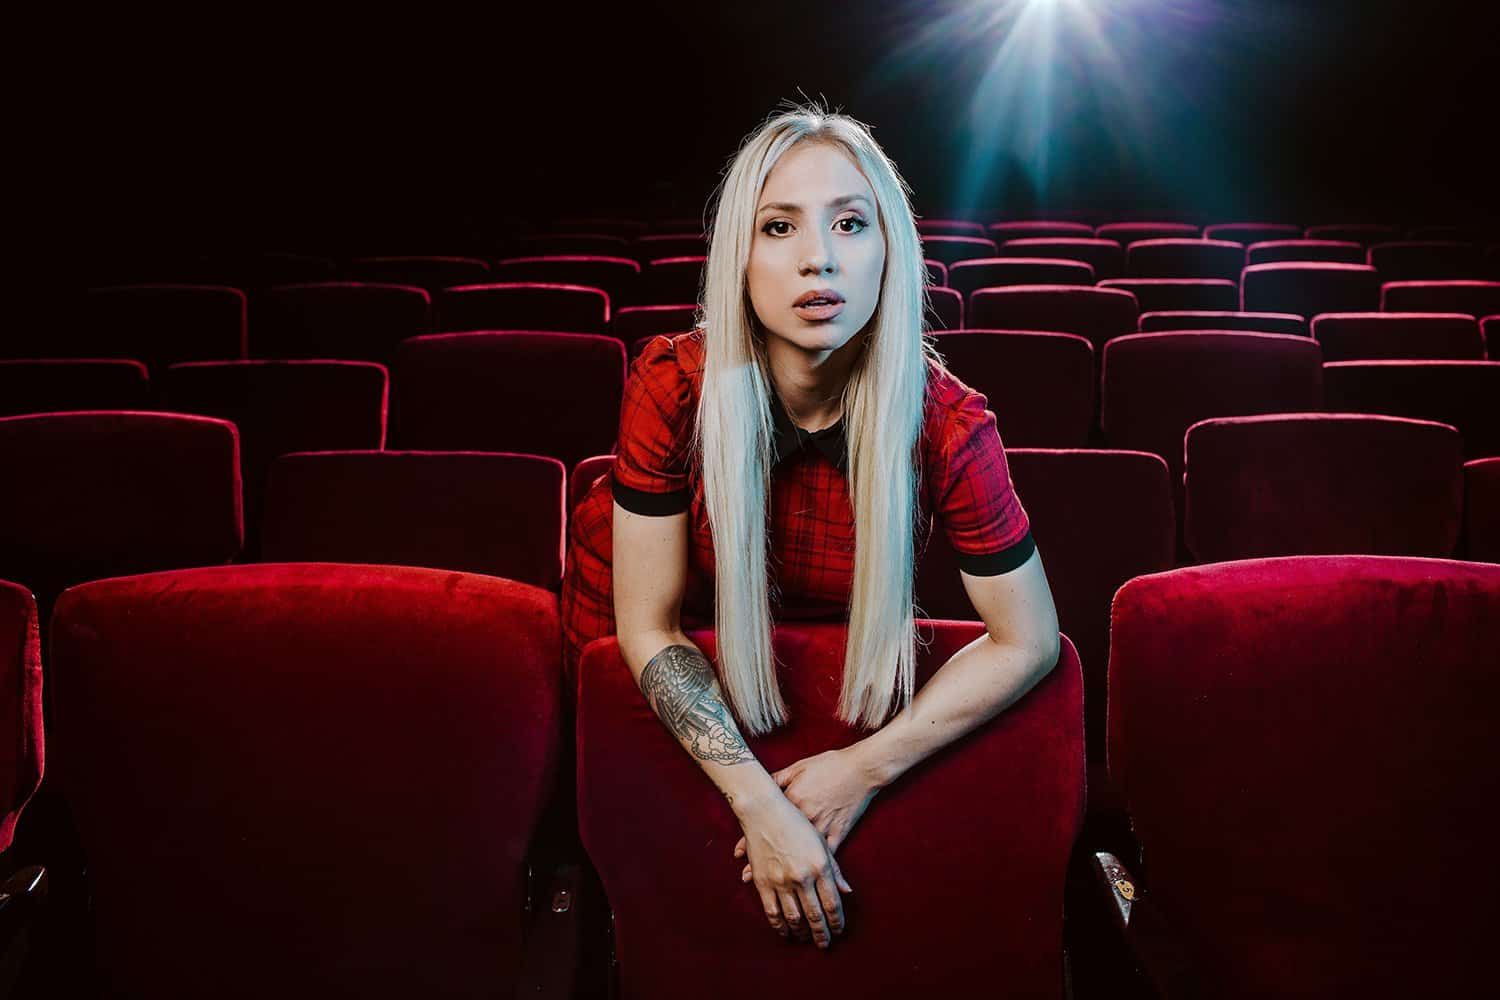 blonde girl movie theater red seats florida reperatory fort myers